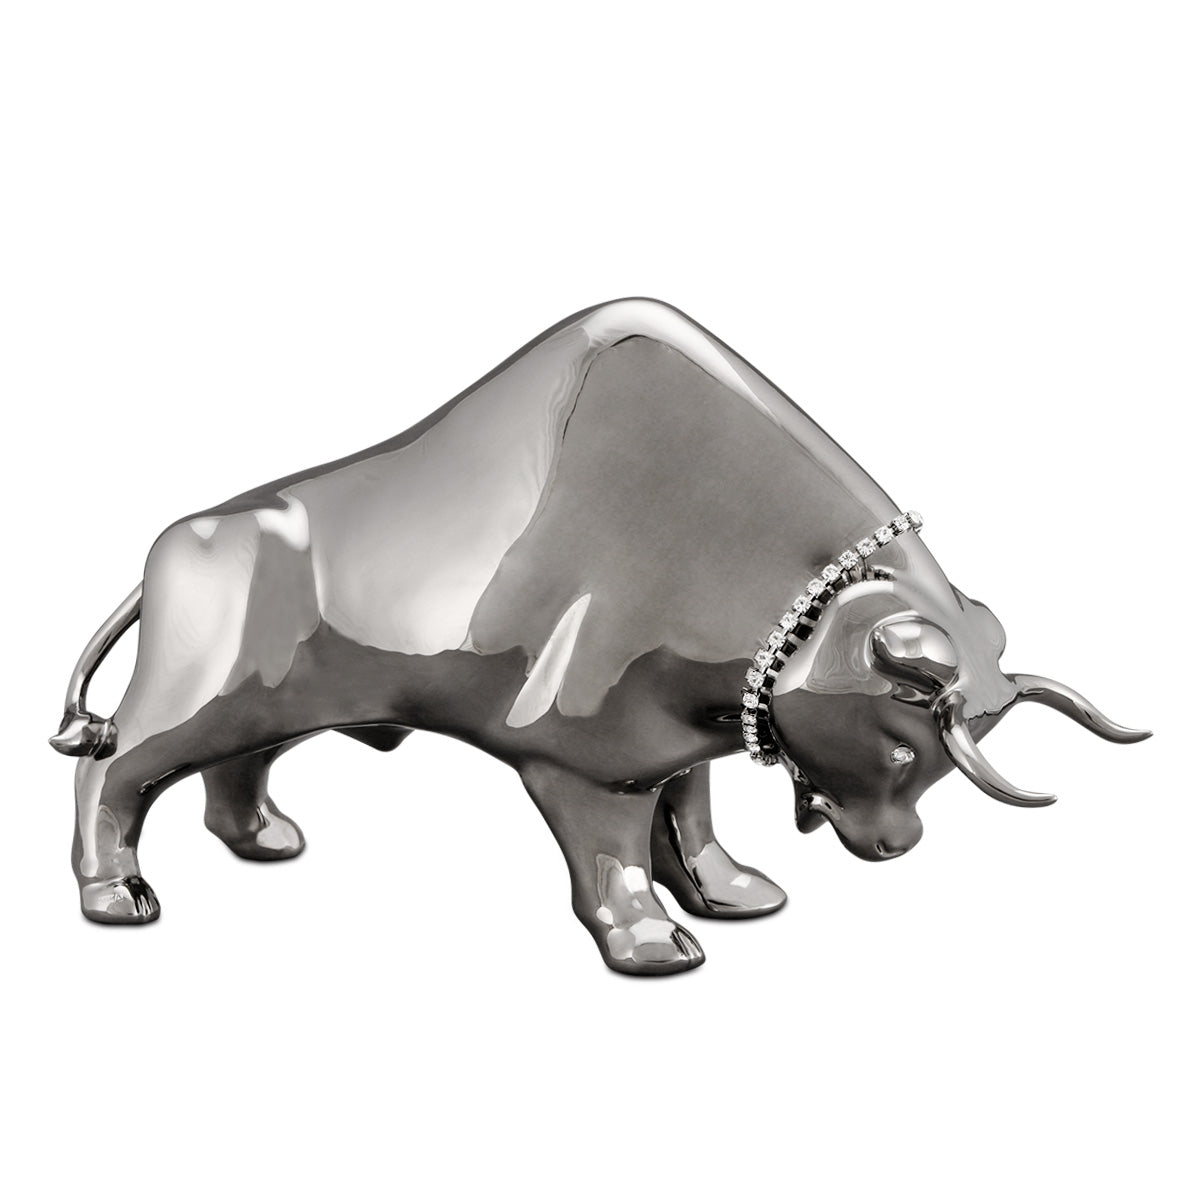 Ceramic bull statue with crystal chain